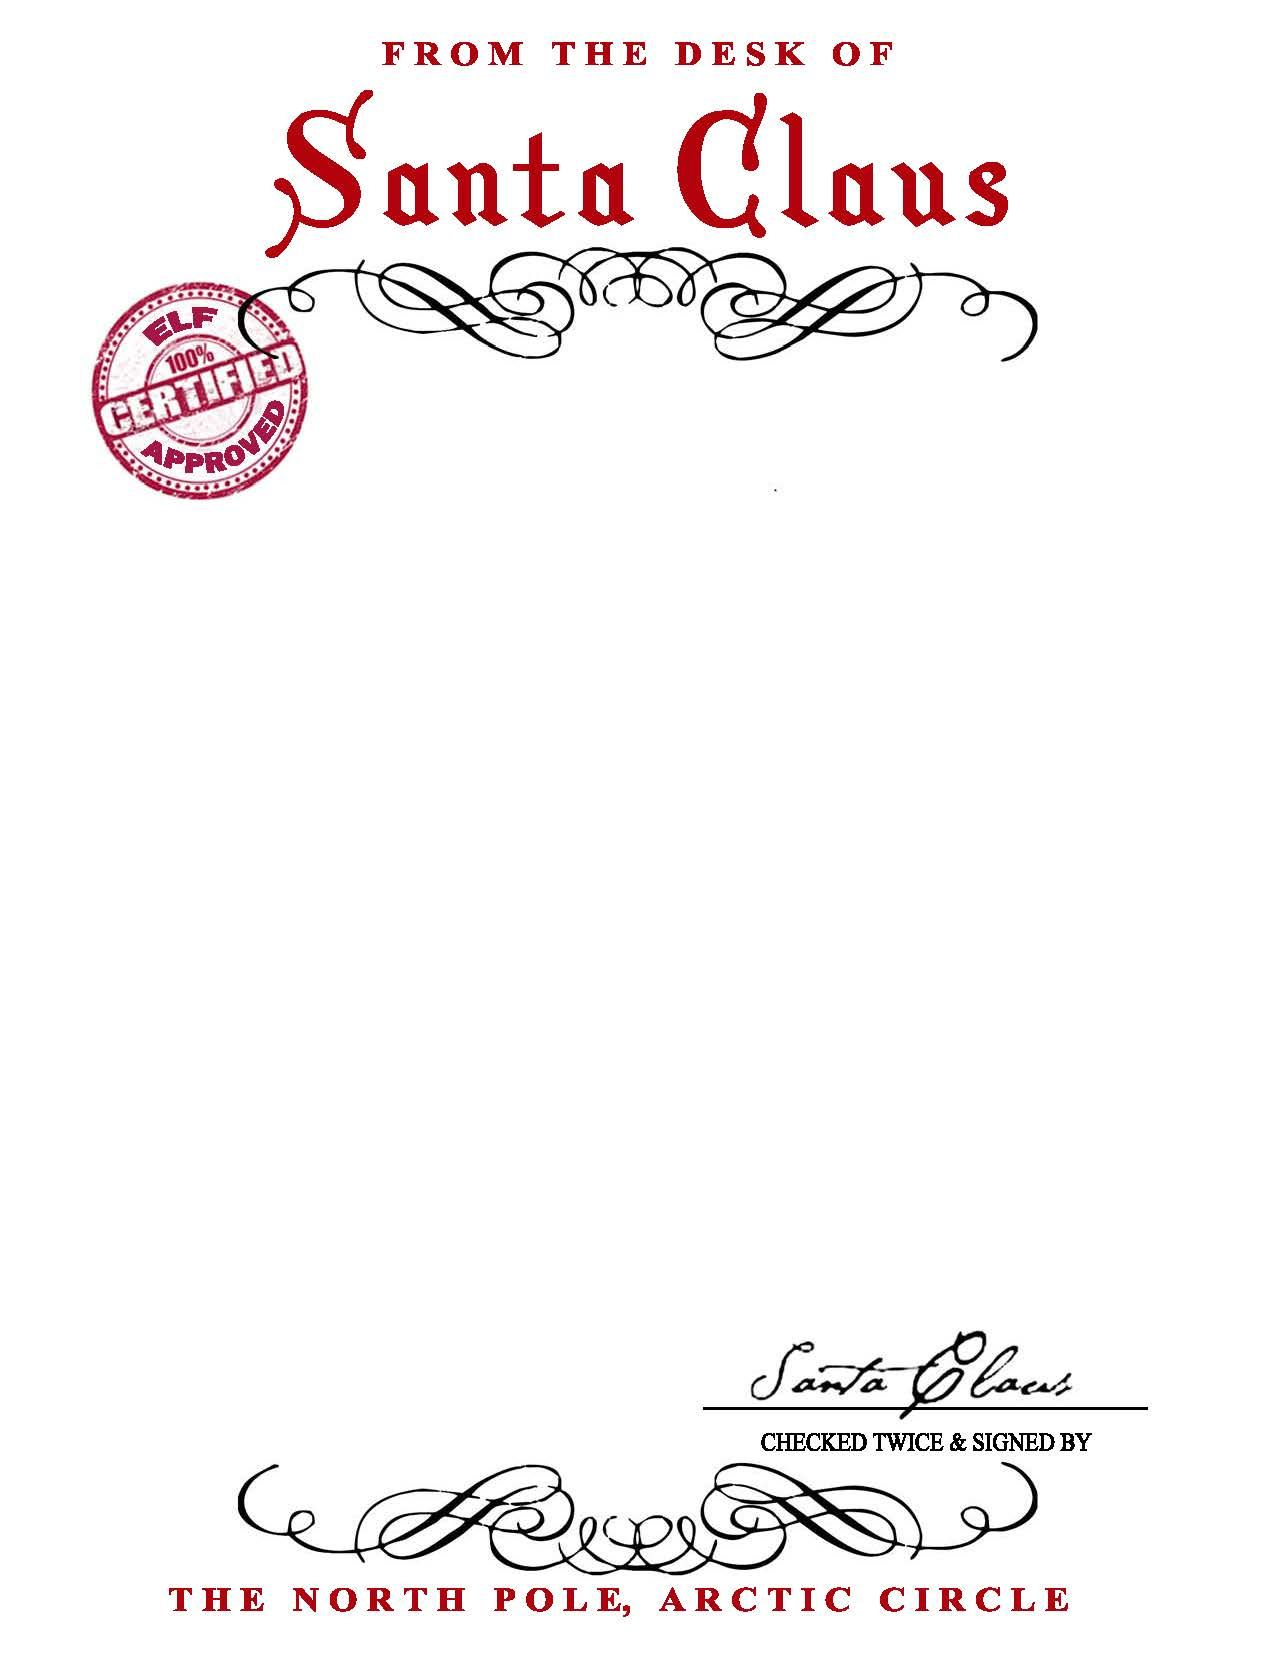 Blank Santa Letter Template - Santa Claus Letterhead Will Bring Lots Of Joy to Children